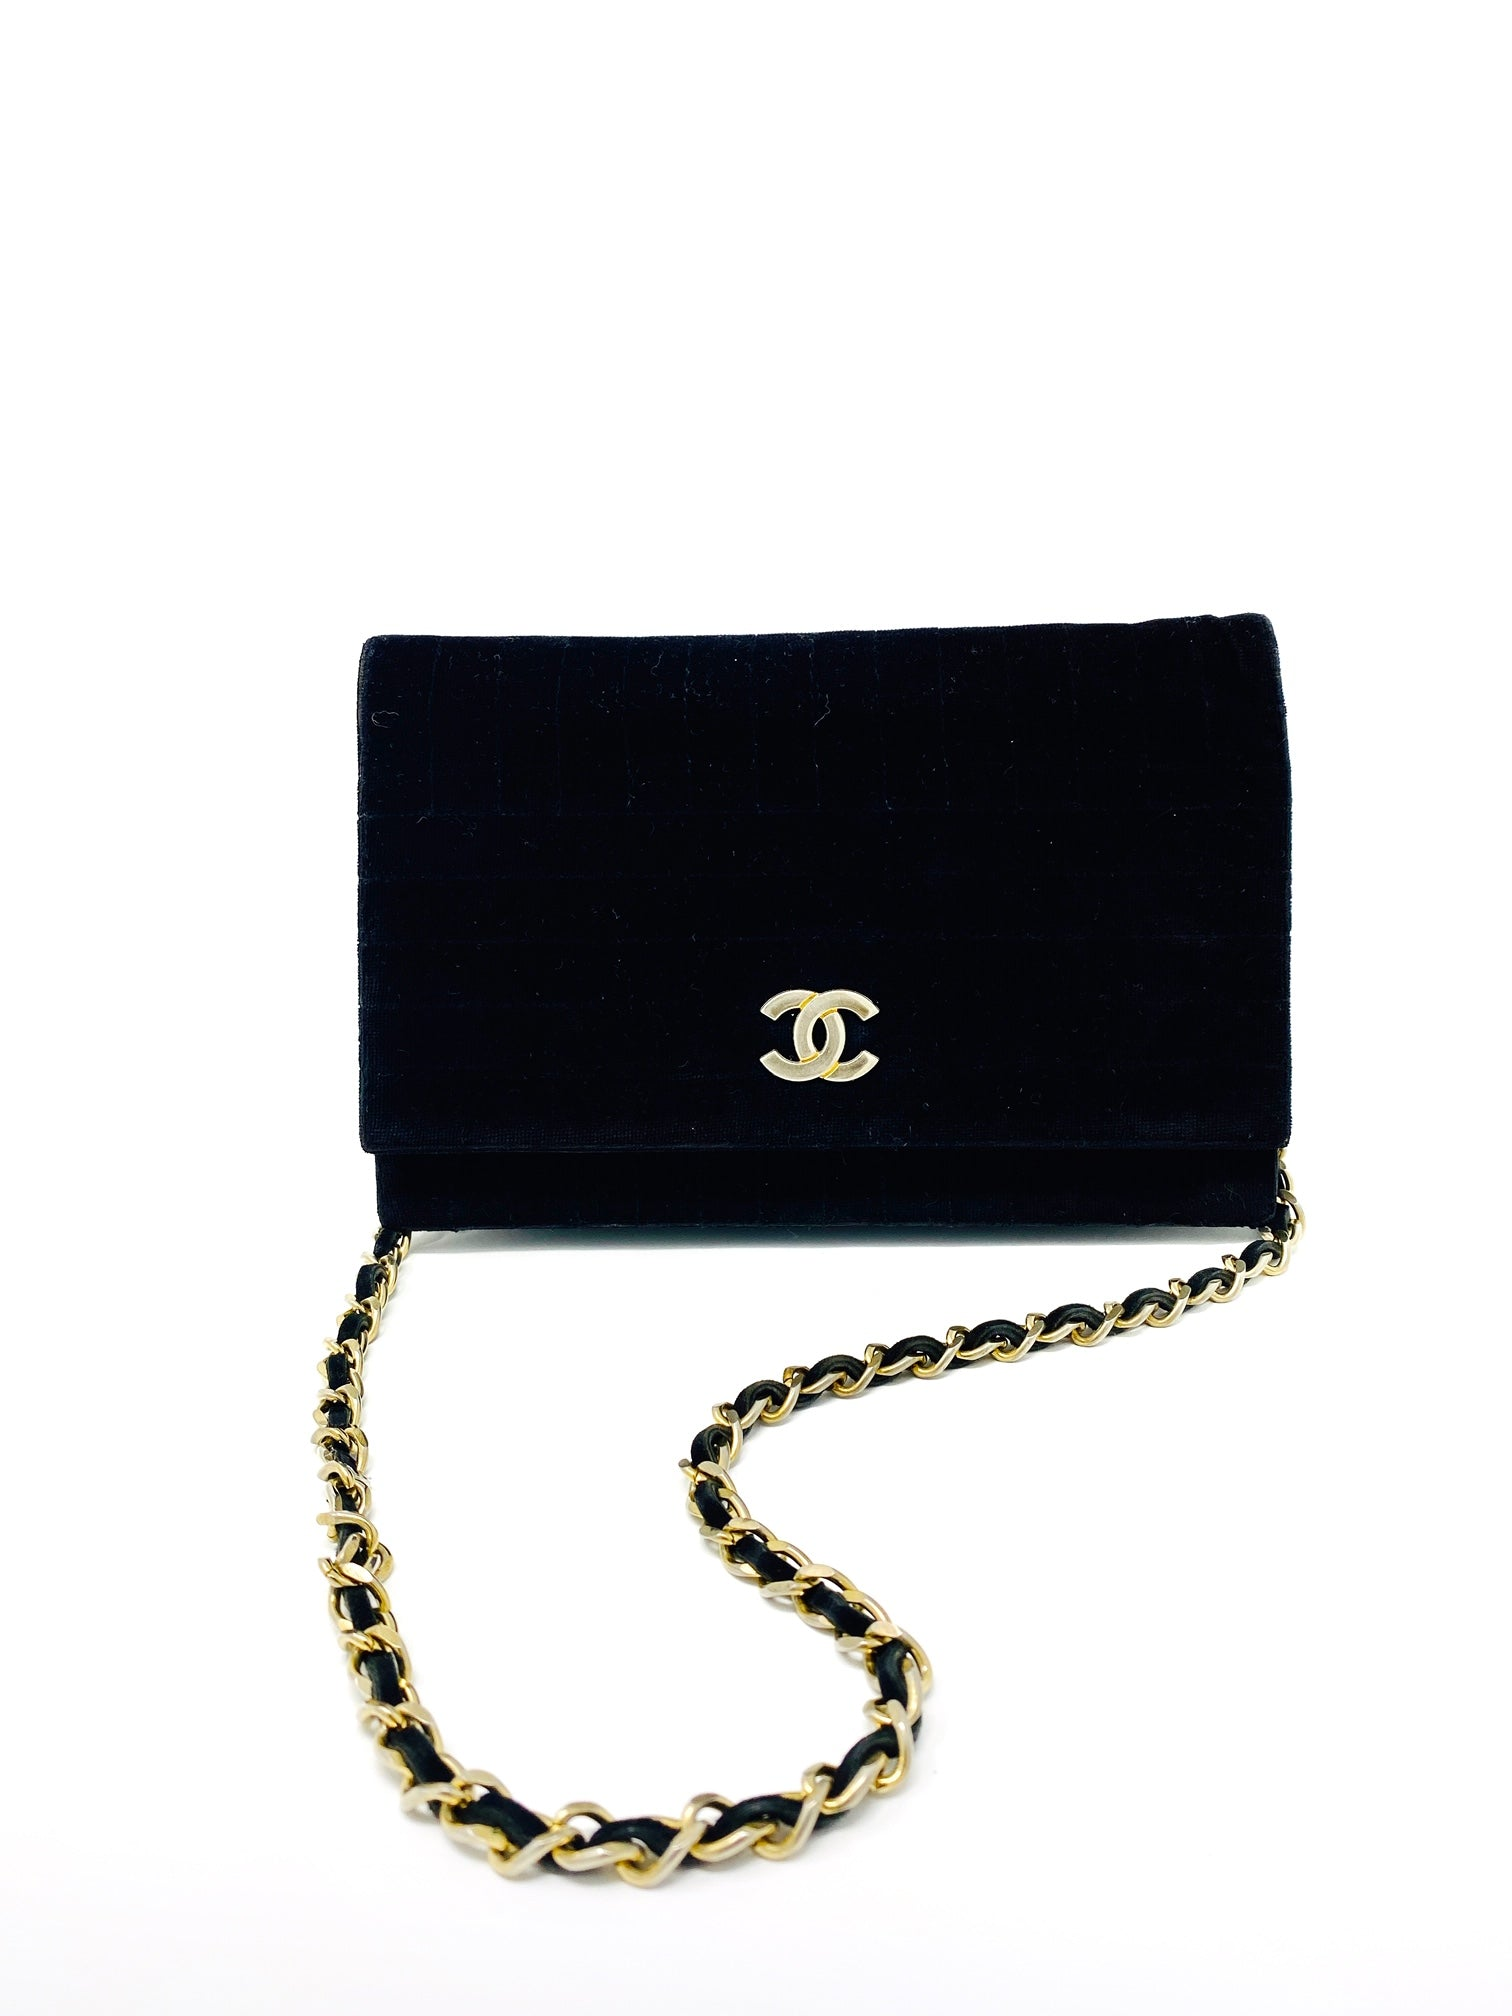 chanel velvet bag in black by maison vivienne